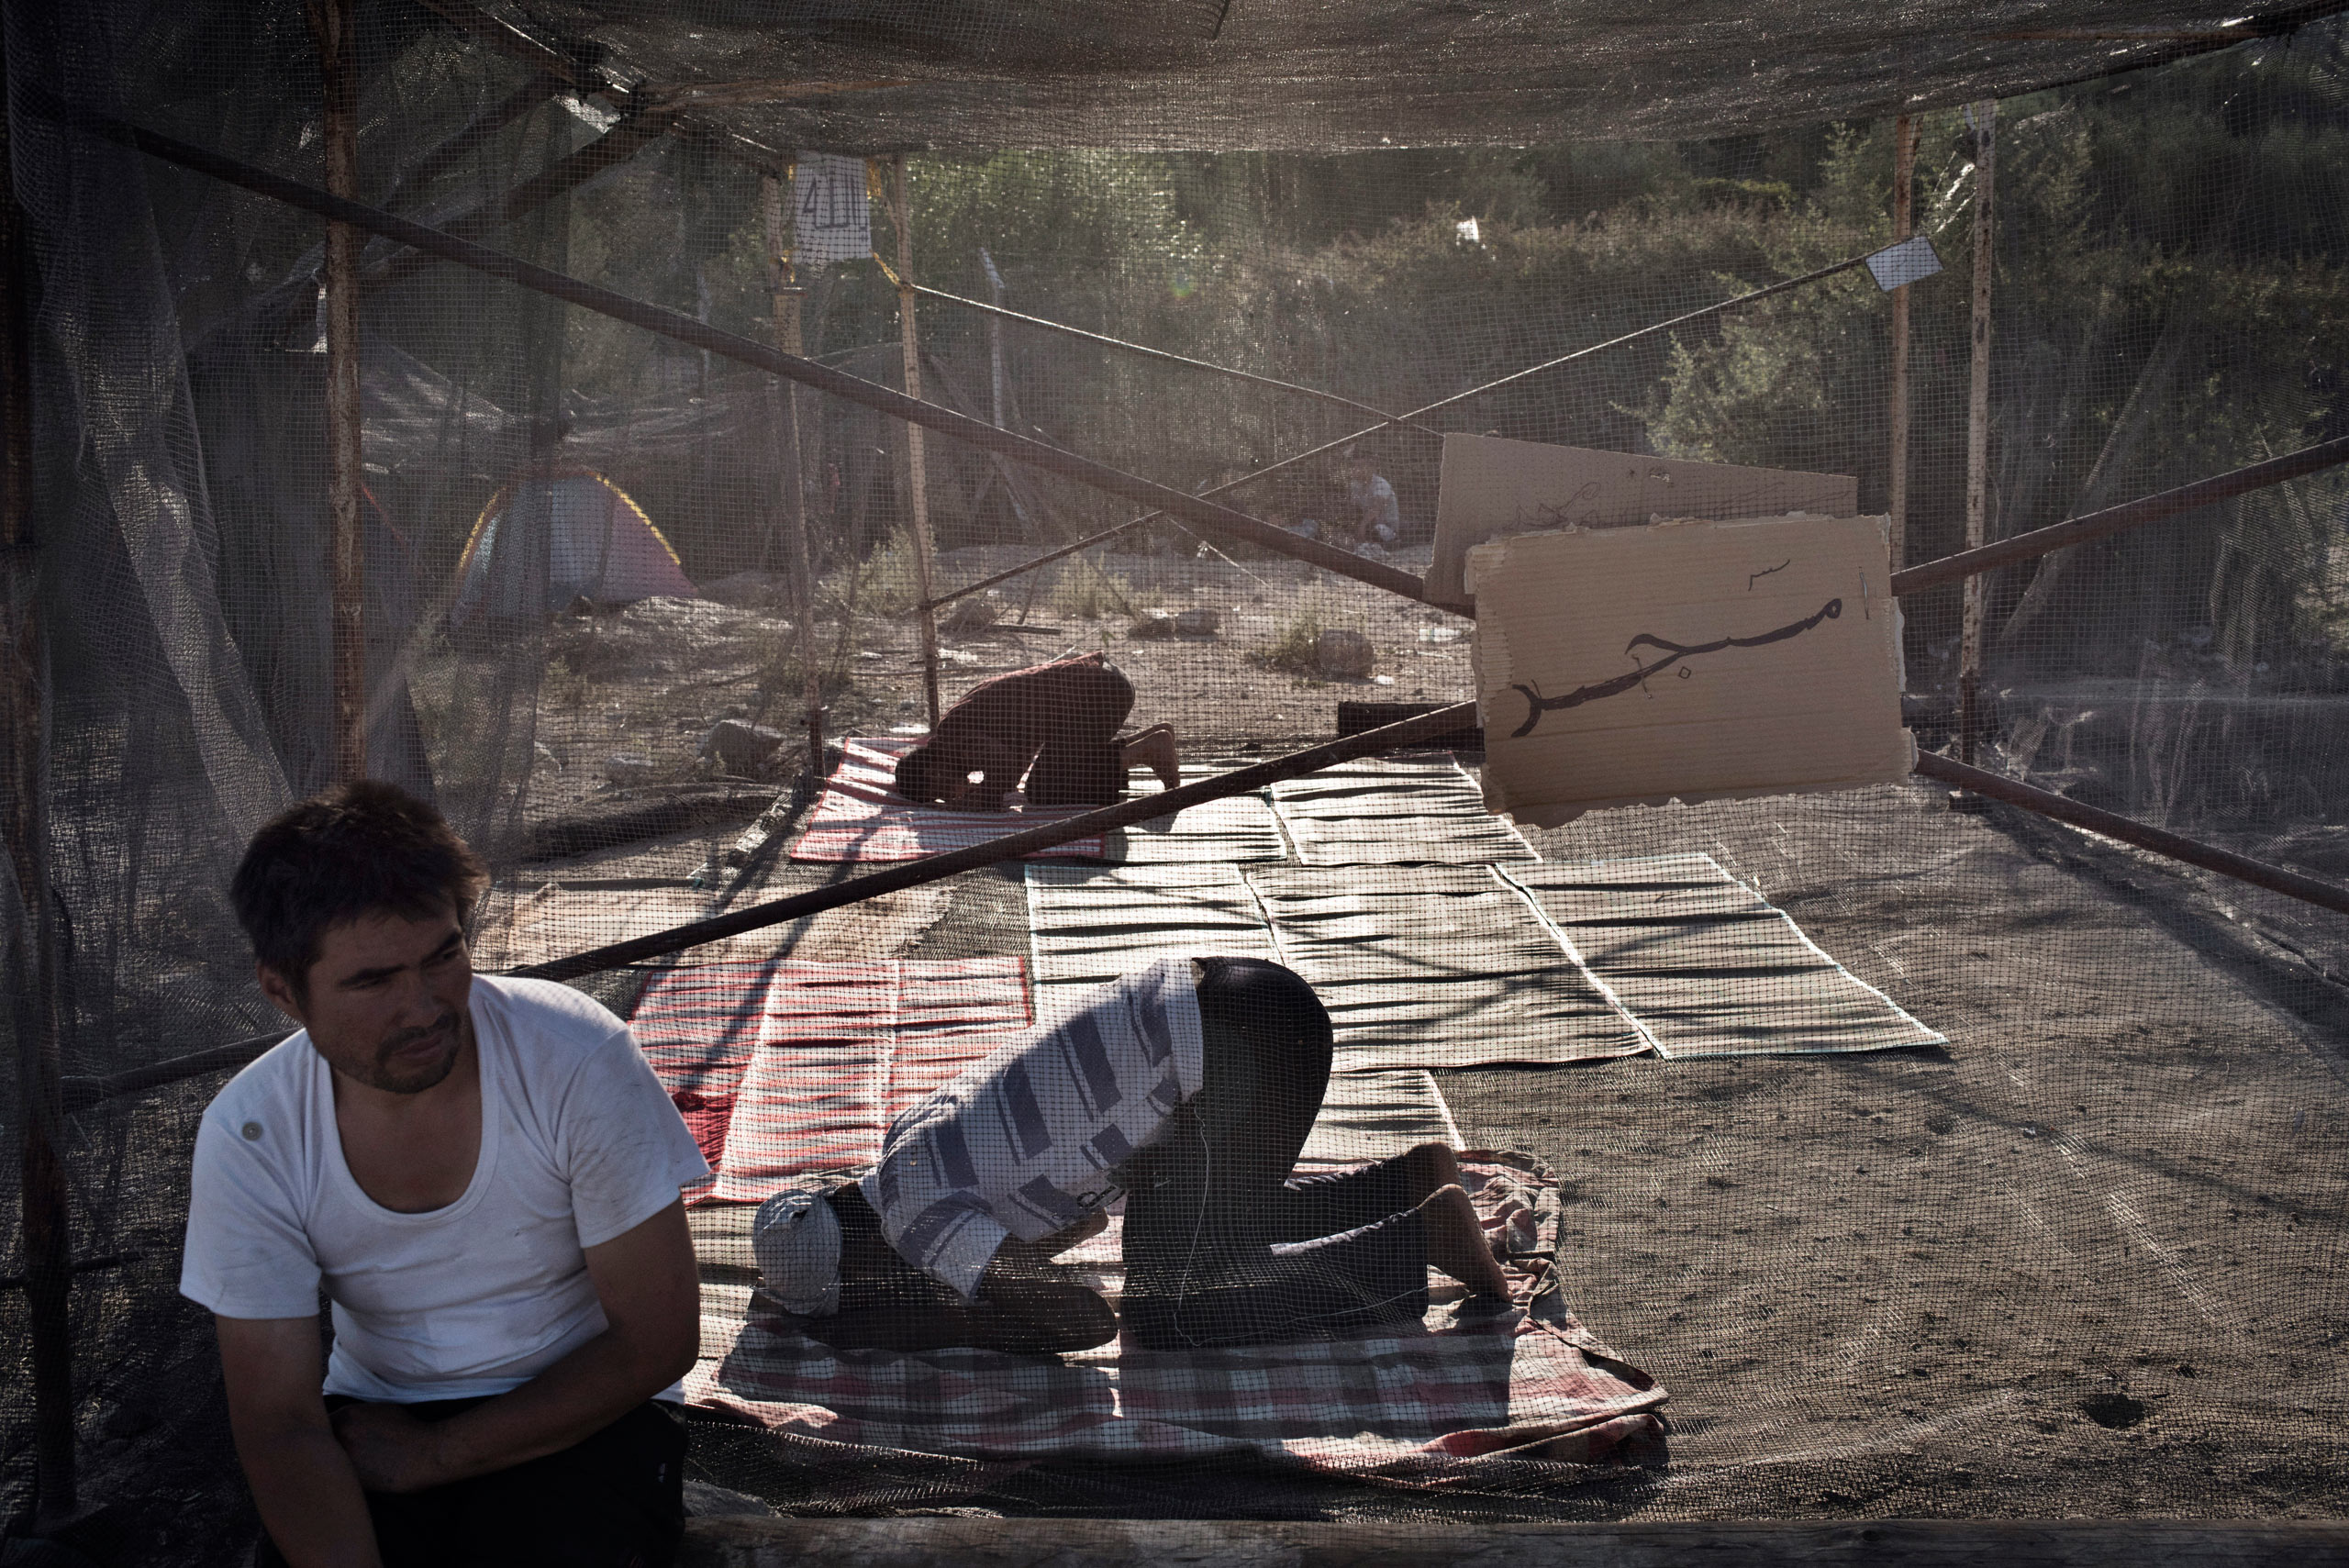 Migrants pray at the makeshift mosque they have built inside a detention and processing camp for asylum seekers on the Greek island of Lesbos, Sept. 4, 2015.